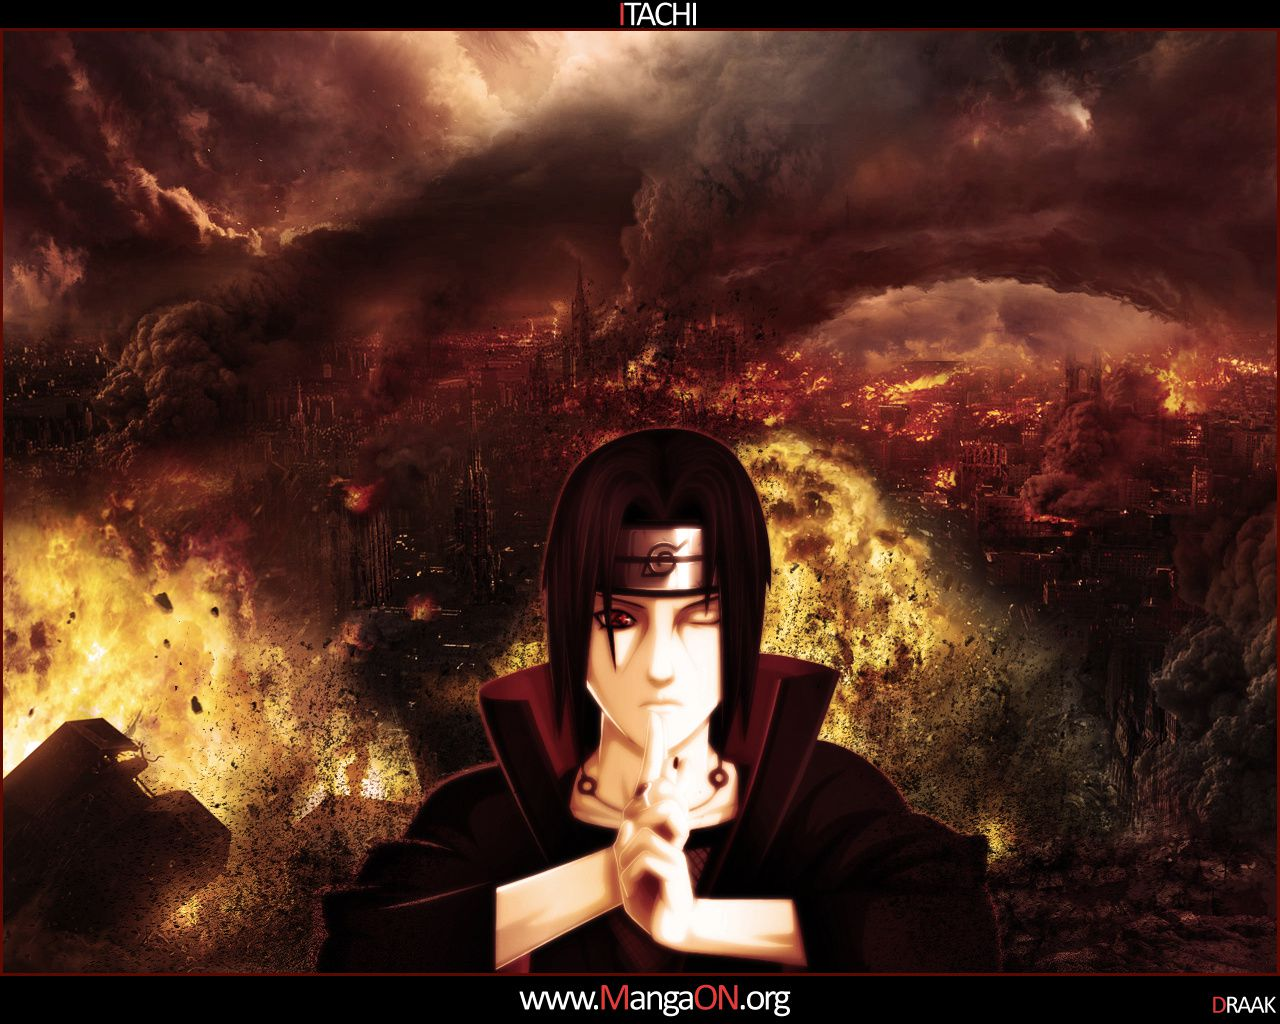 https://i1.wp.com/a34.idata.over-blog.com/1/94/63/59/Novembre2009/itachi-copy.jpg